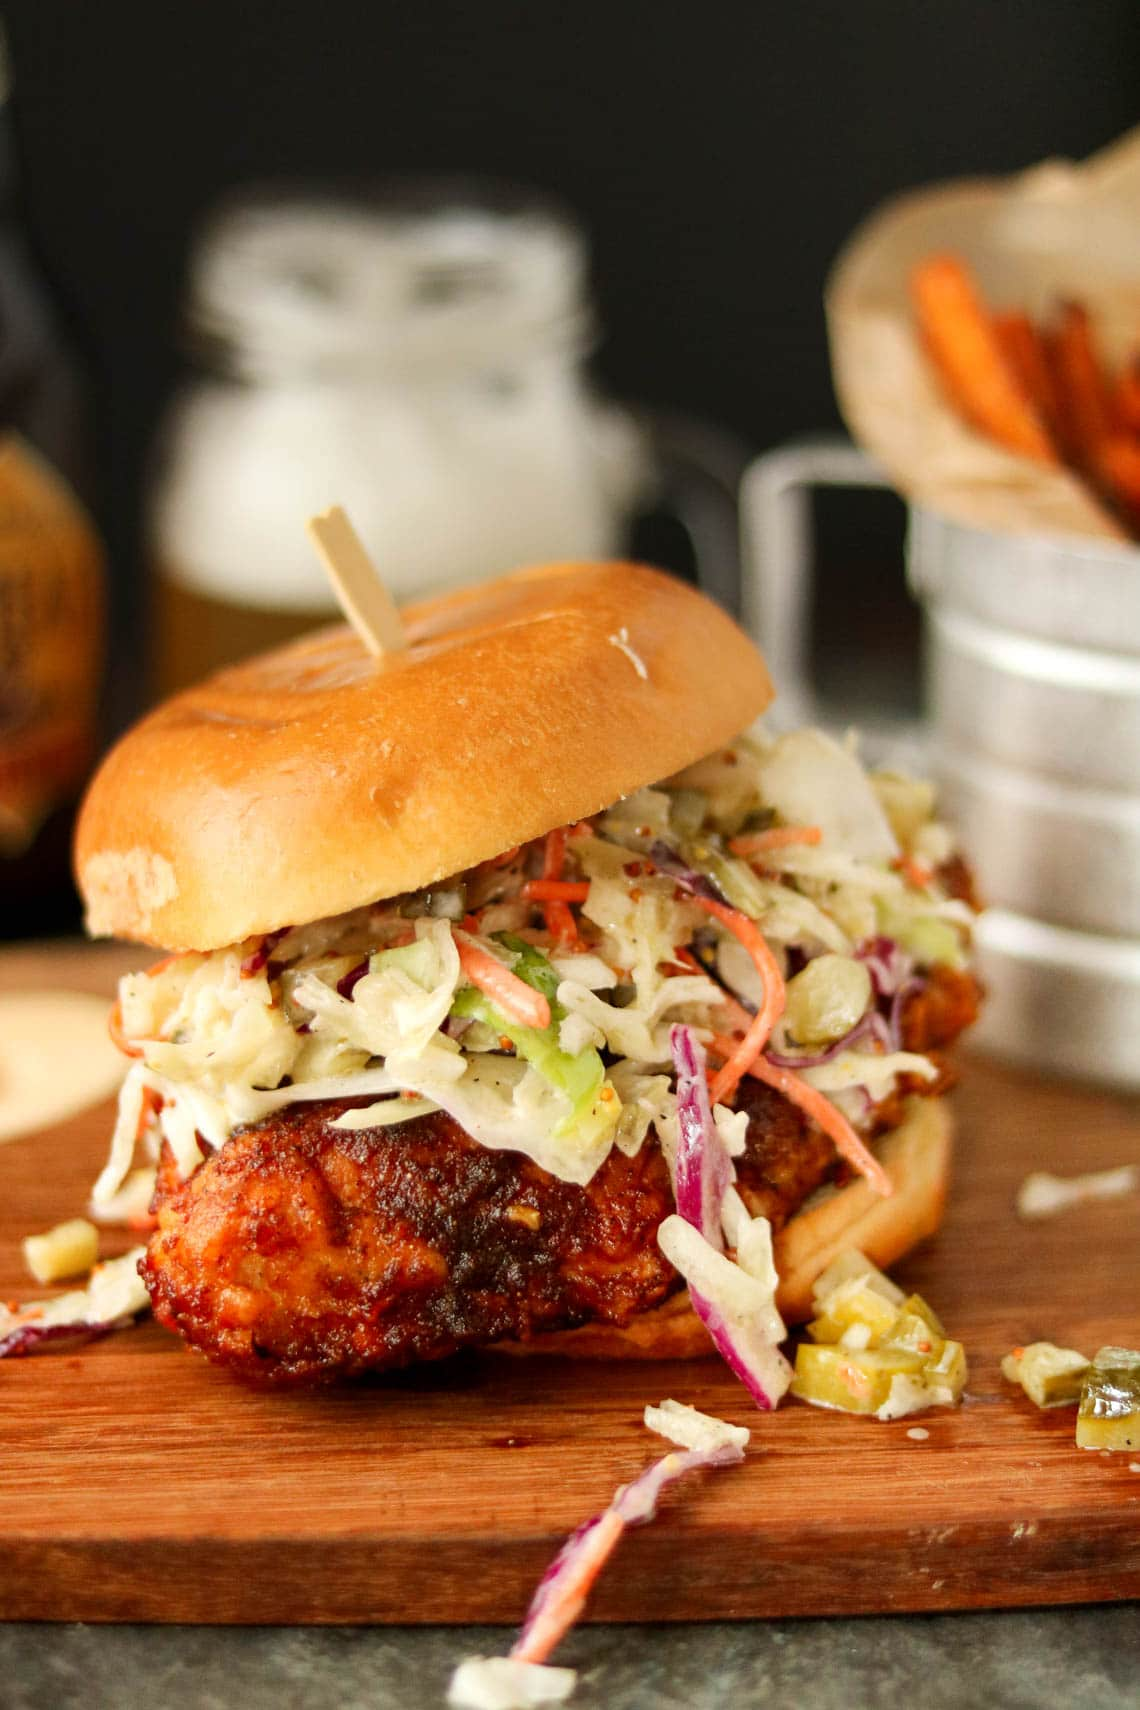 Nashville hot chicken sandwich sitting on a wooden cutting board